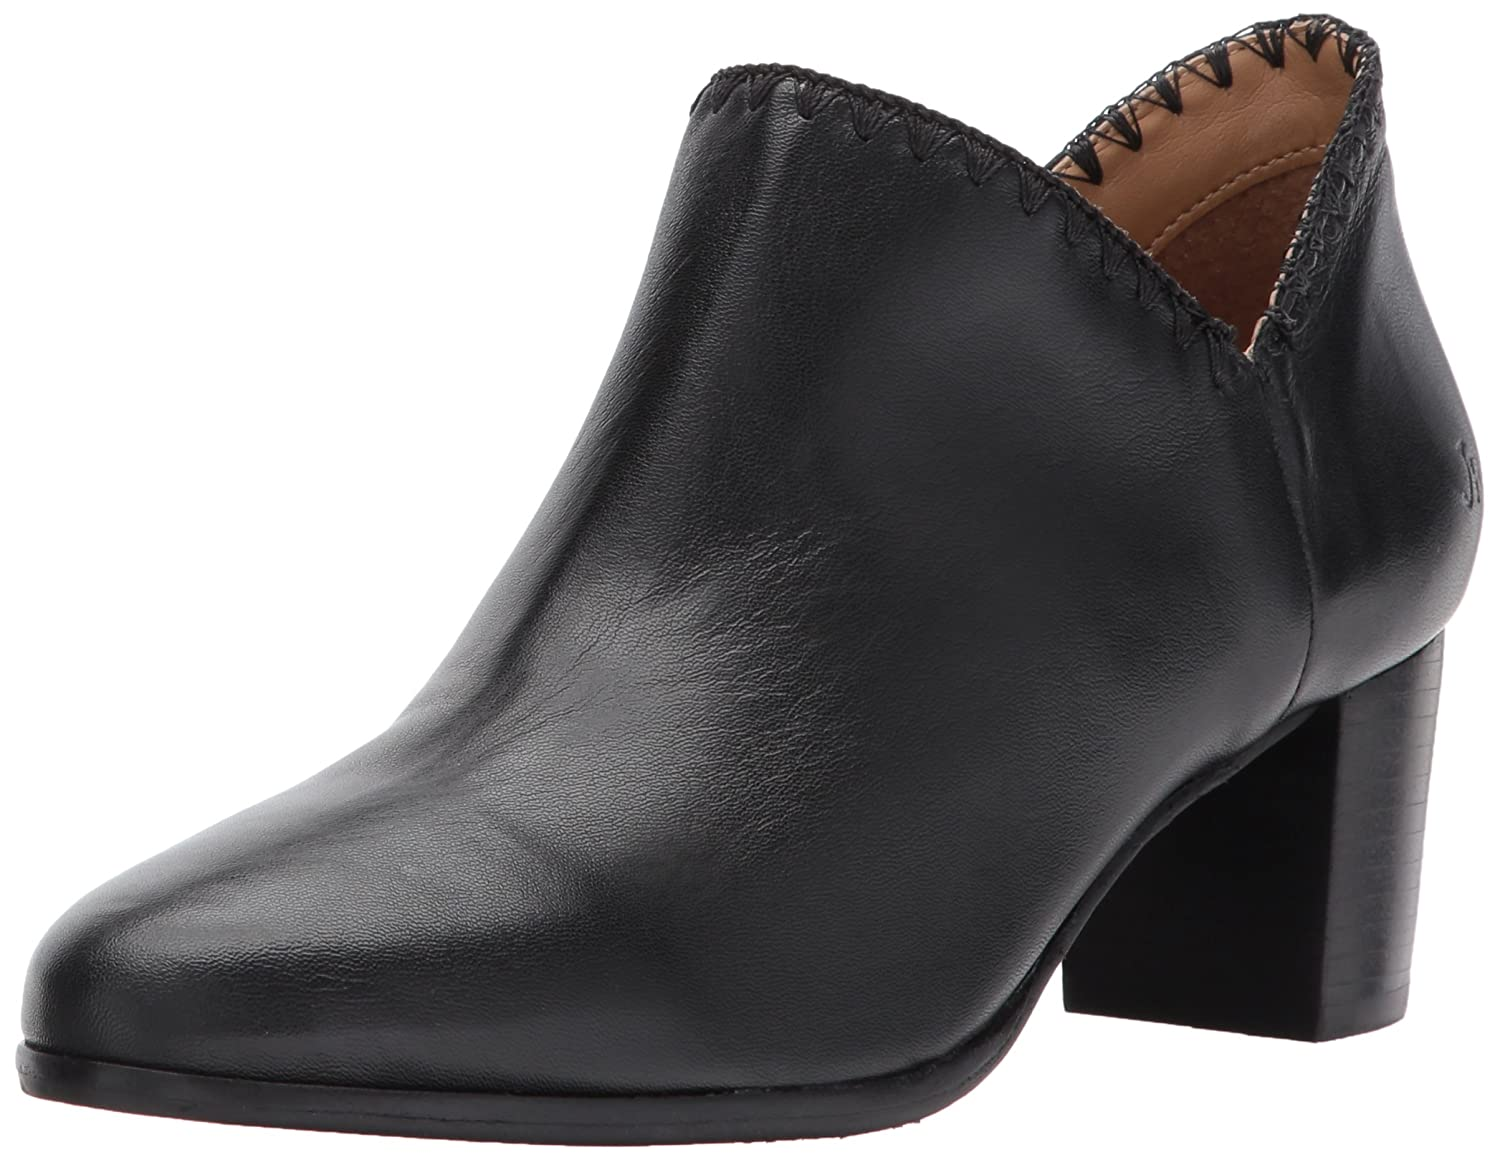 Jack Rogers US|Black Women's Marlow Ankle Bootie B01NCOZ650 10 M US|Black Rogers 30fa1a